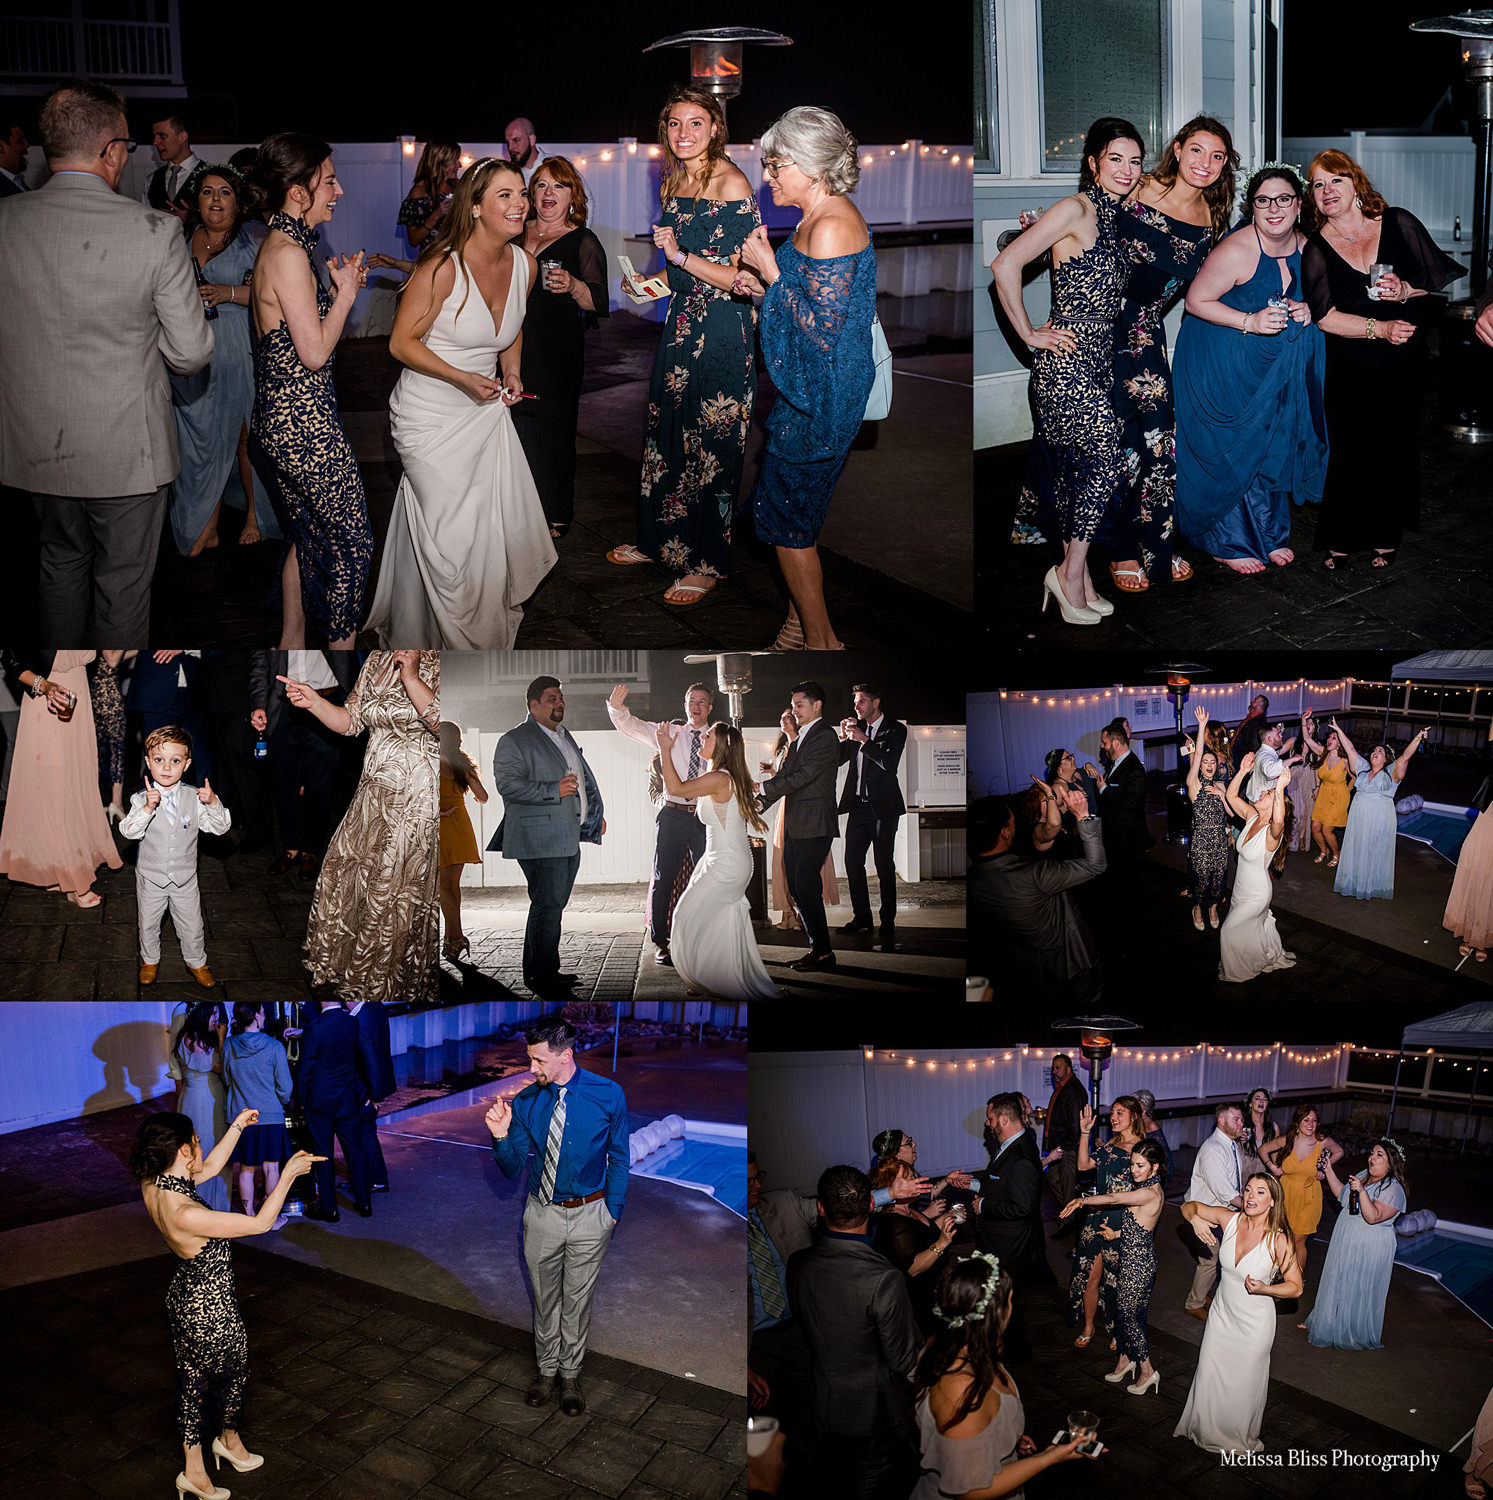 sandbridge-beach-wedding-reception-photos-melissa-bliss-photography.jpg